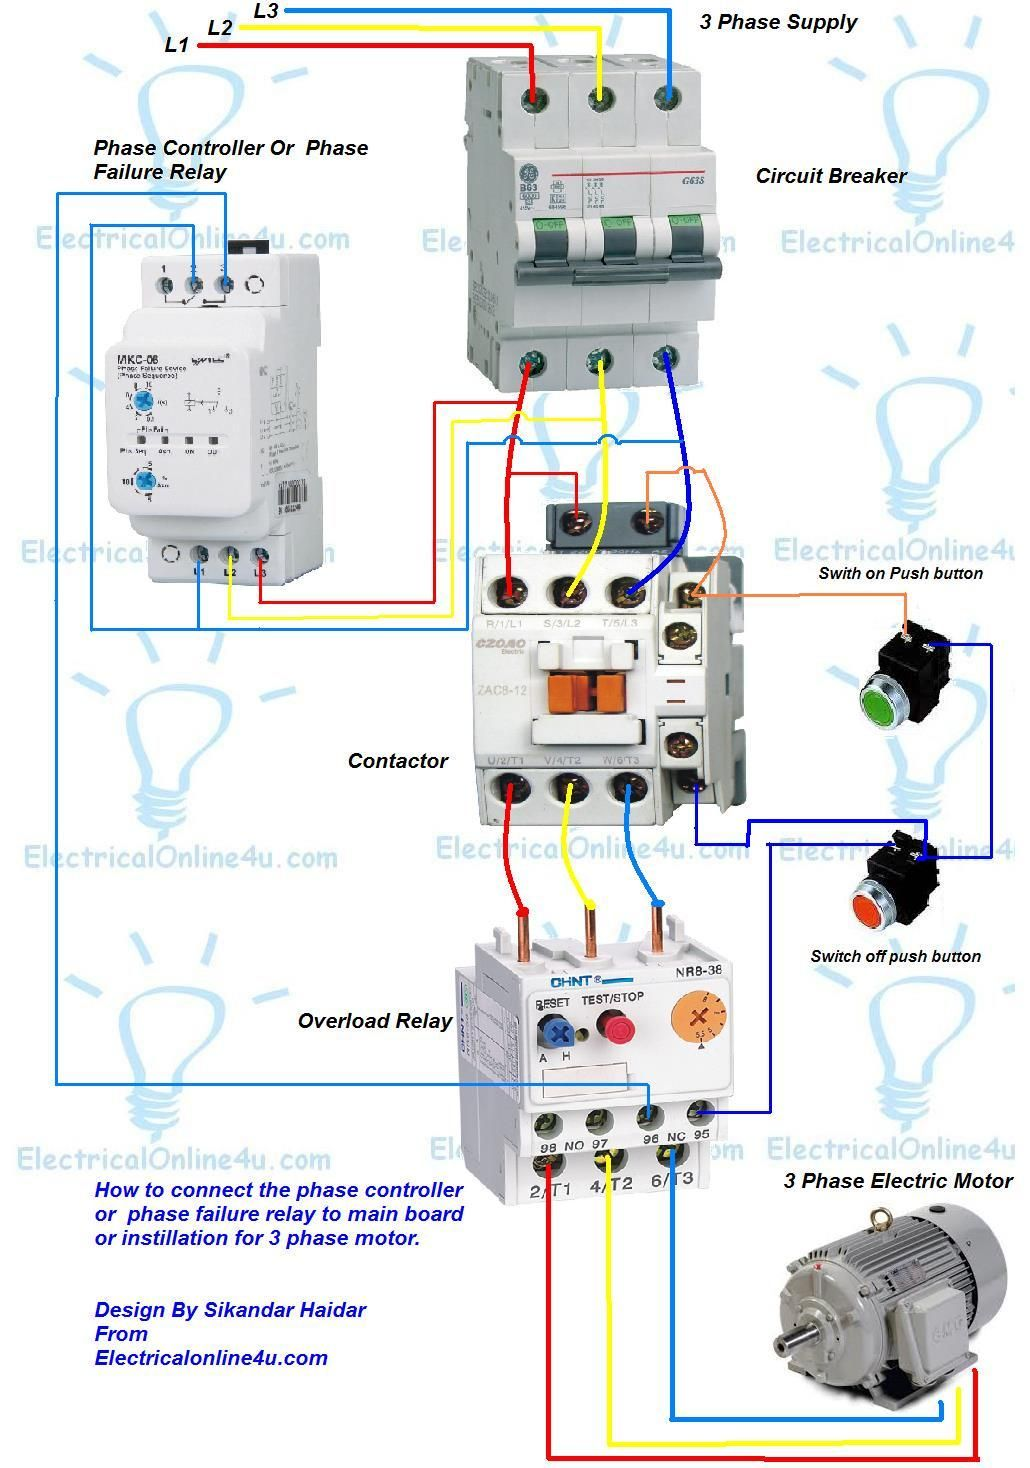 Phase Controller Wiring / Phase Failure Relay Diagram in ... on 3 phase electric panel diagrams, 3 phase inverter diagram, 3 phase wire, ceiling fan installation diagram, 3 phase converter diagram, 3 phase thermostat diagram, 3 phase generator diagram, 3 phase connector diagram, 3 phase schematic diagrams, 3 phase relay, 3 phase electricity diagram, 3 phase plug, 3 phase circuit, 3 phase transformers diagram, 3 phase cable, 3 phase motor connection diagram, 3 phase block diagram, 3 phase power, 3 phase regulator, 3 phase coil diagram,